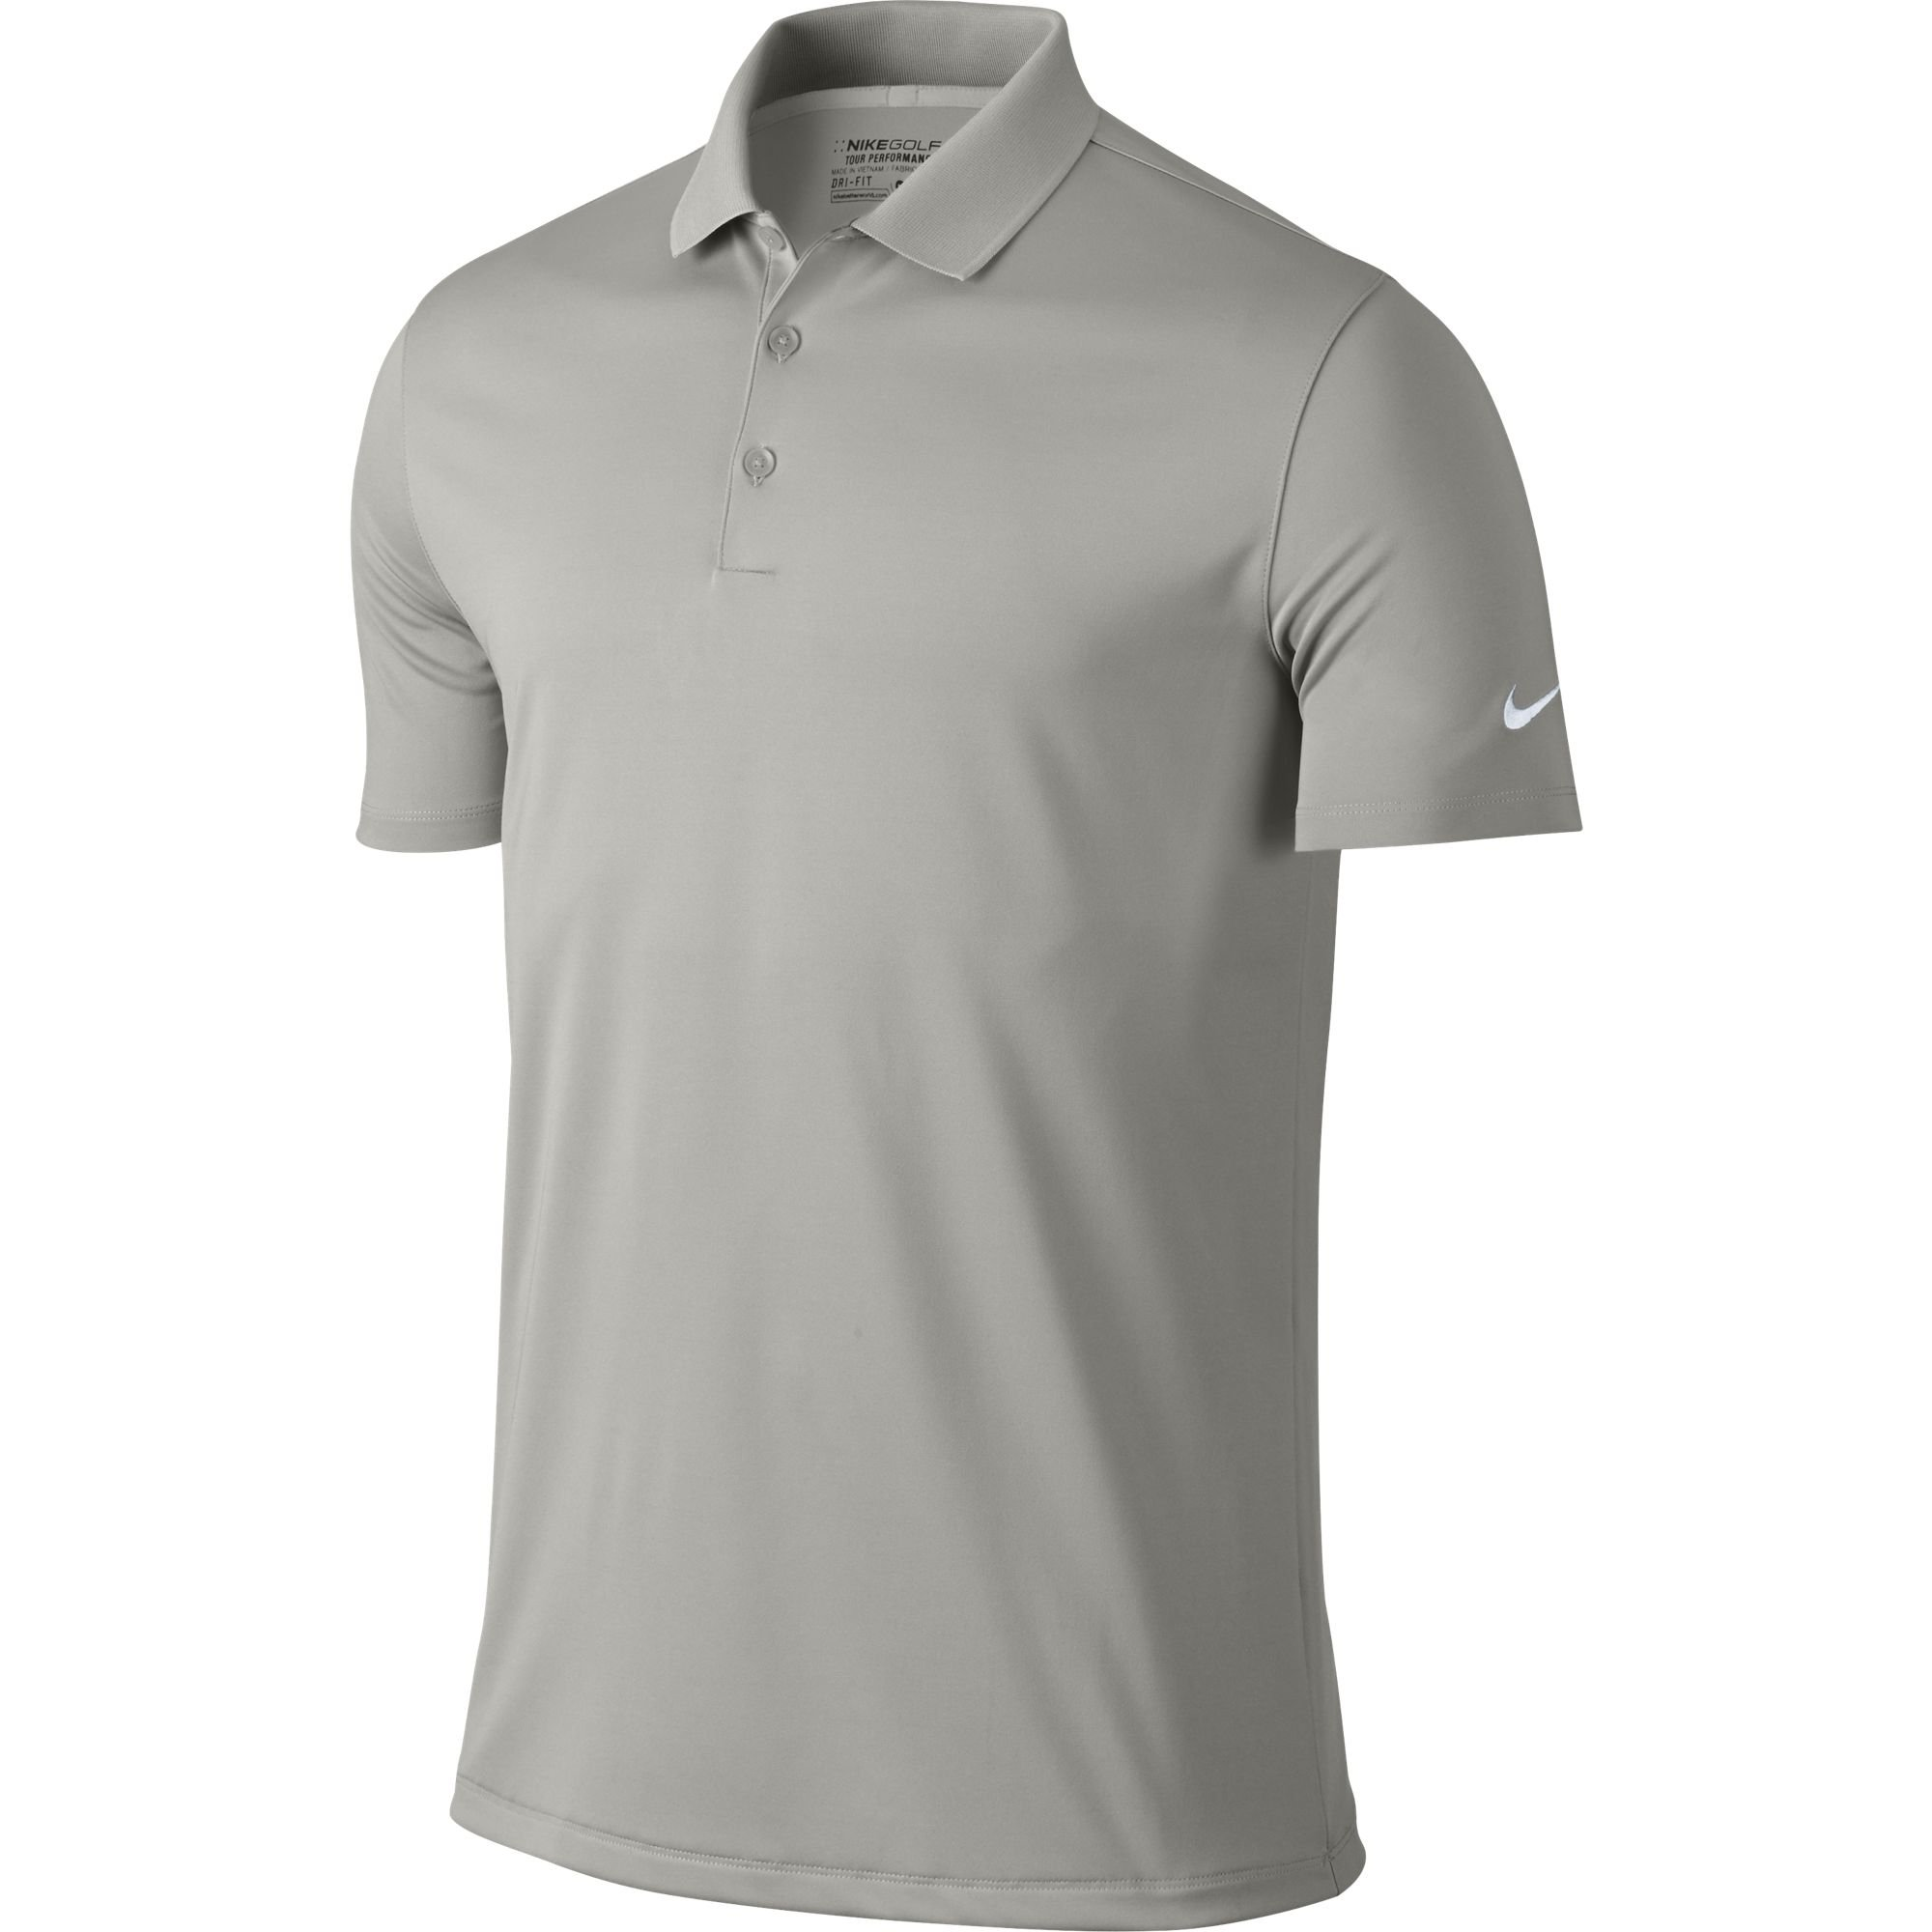 737385992785 Best Rated in Men s Golf Shirts   Helpful Customer Reviews - Amazon.com